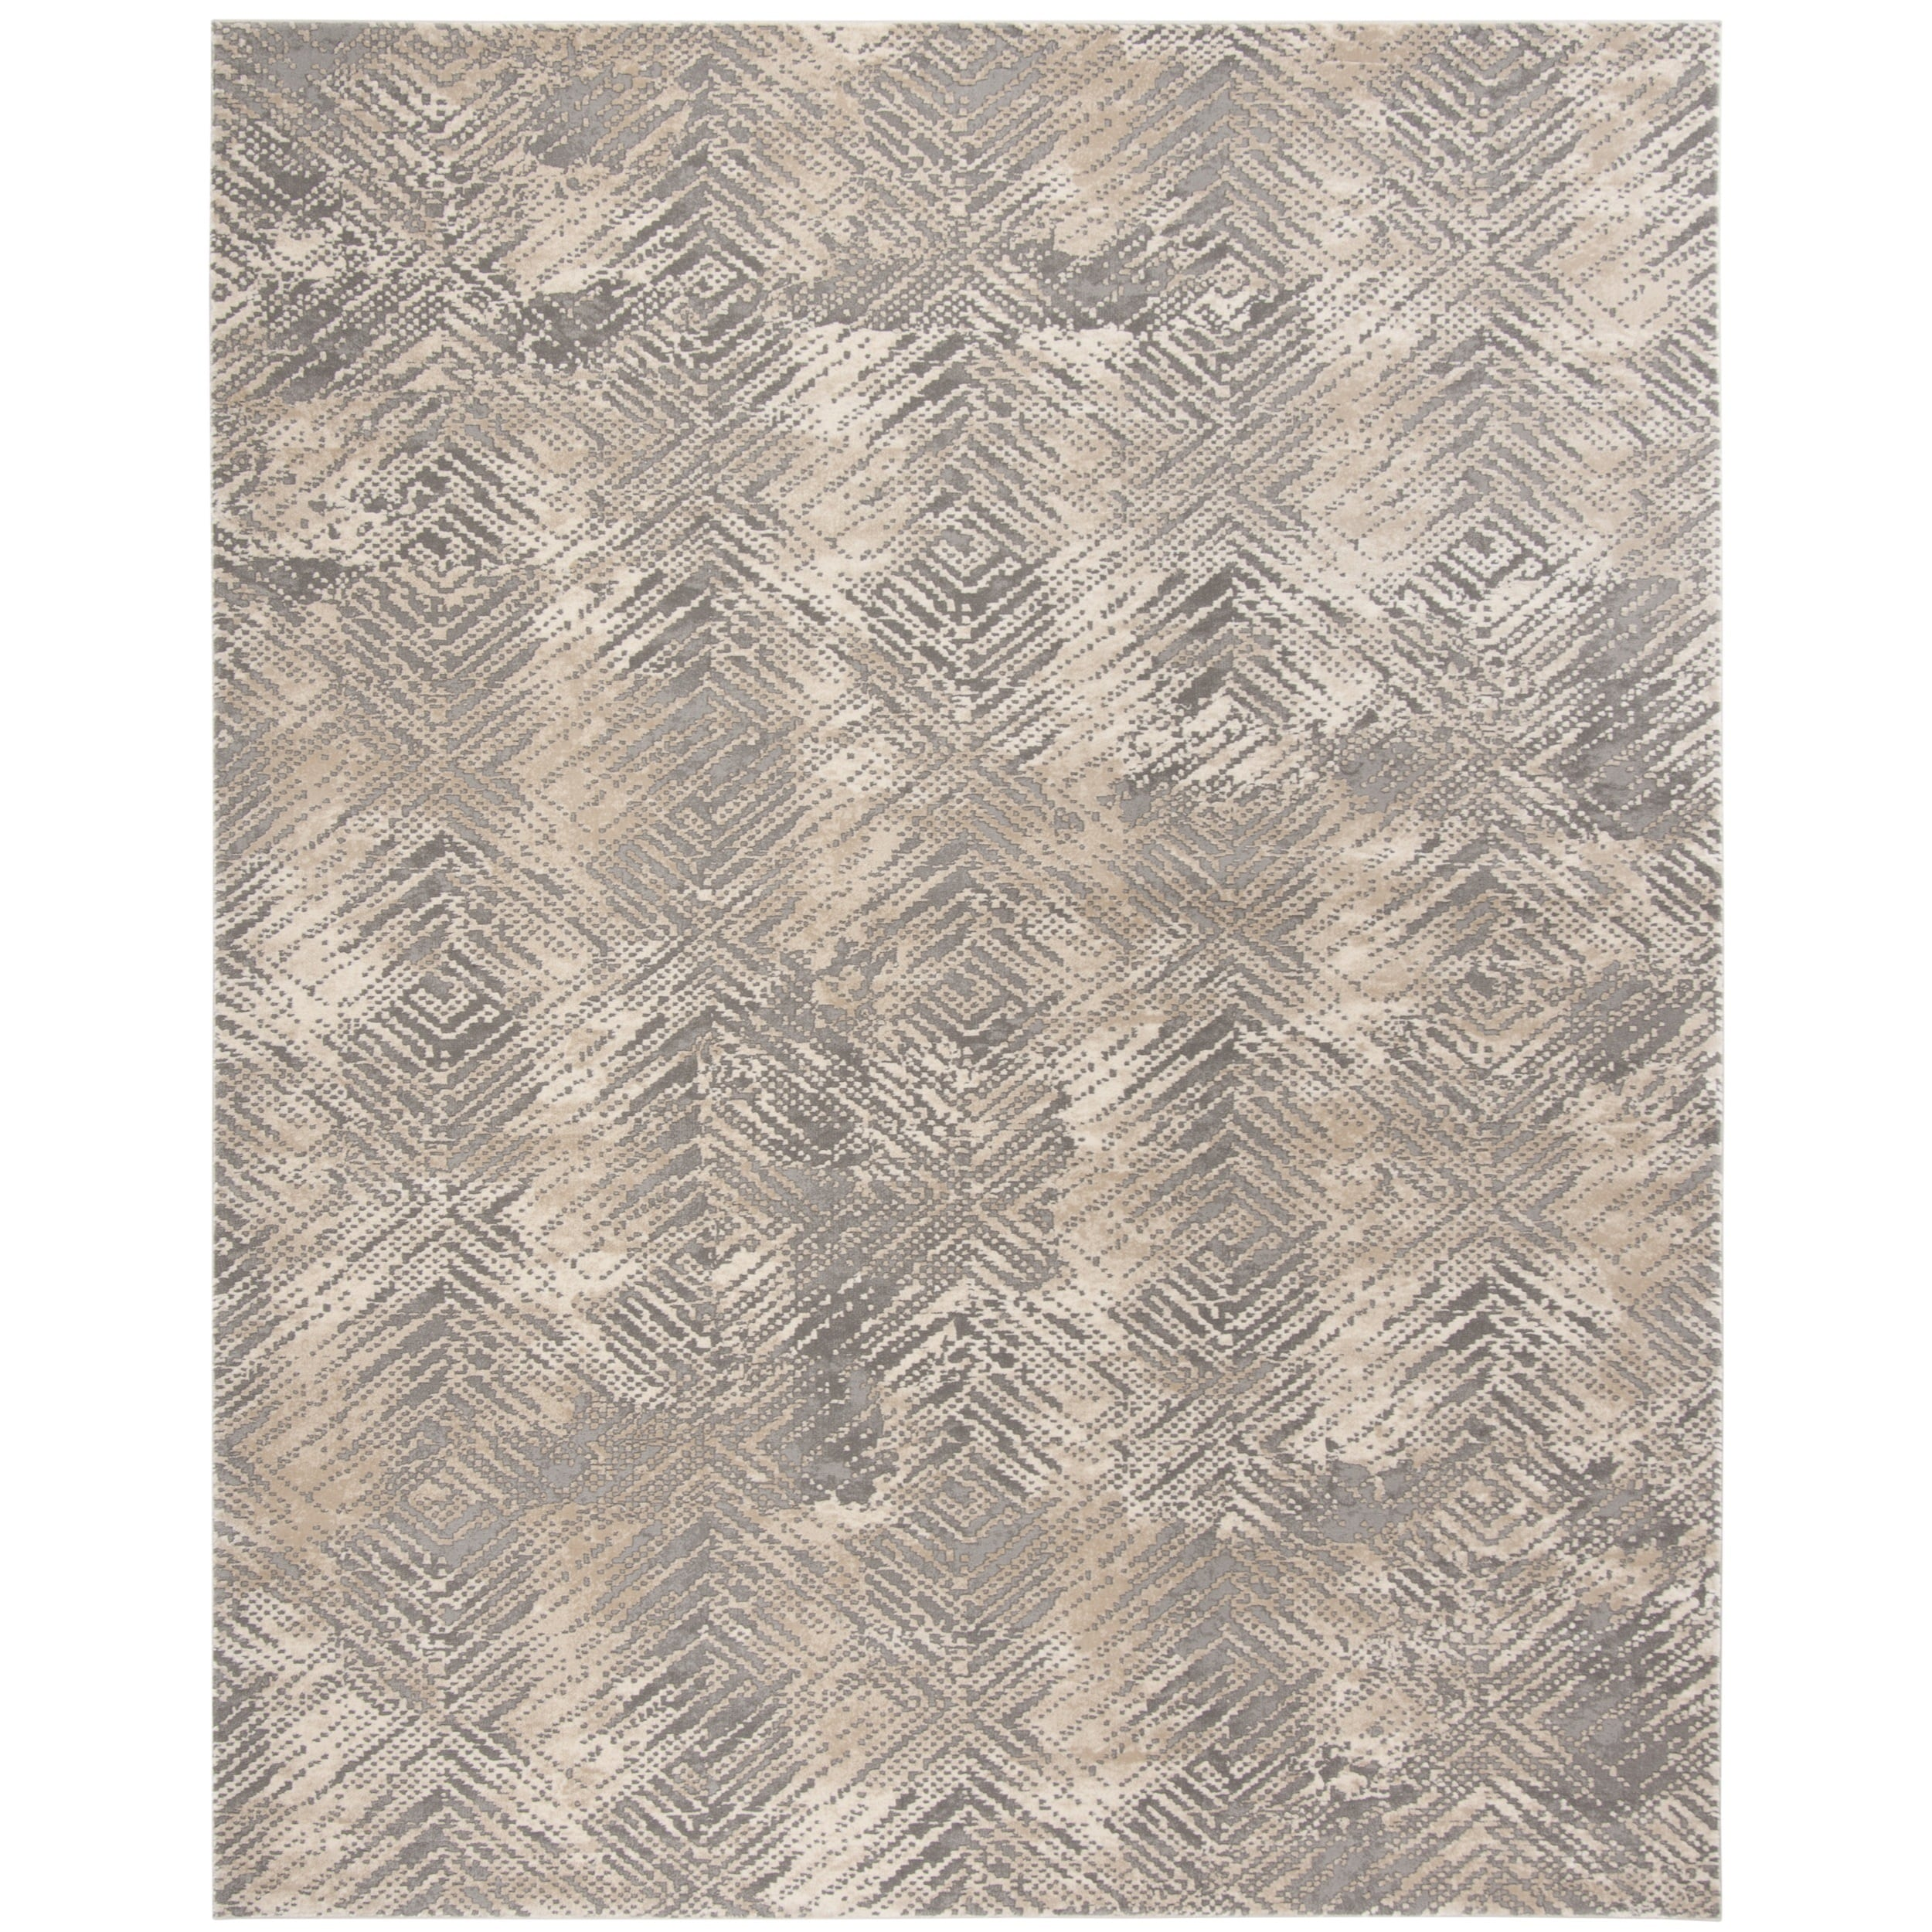 polyester grey elegant safavieh beautiful and light x of buyaustinhome reflection cream area rug pictures